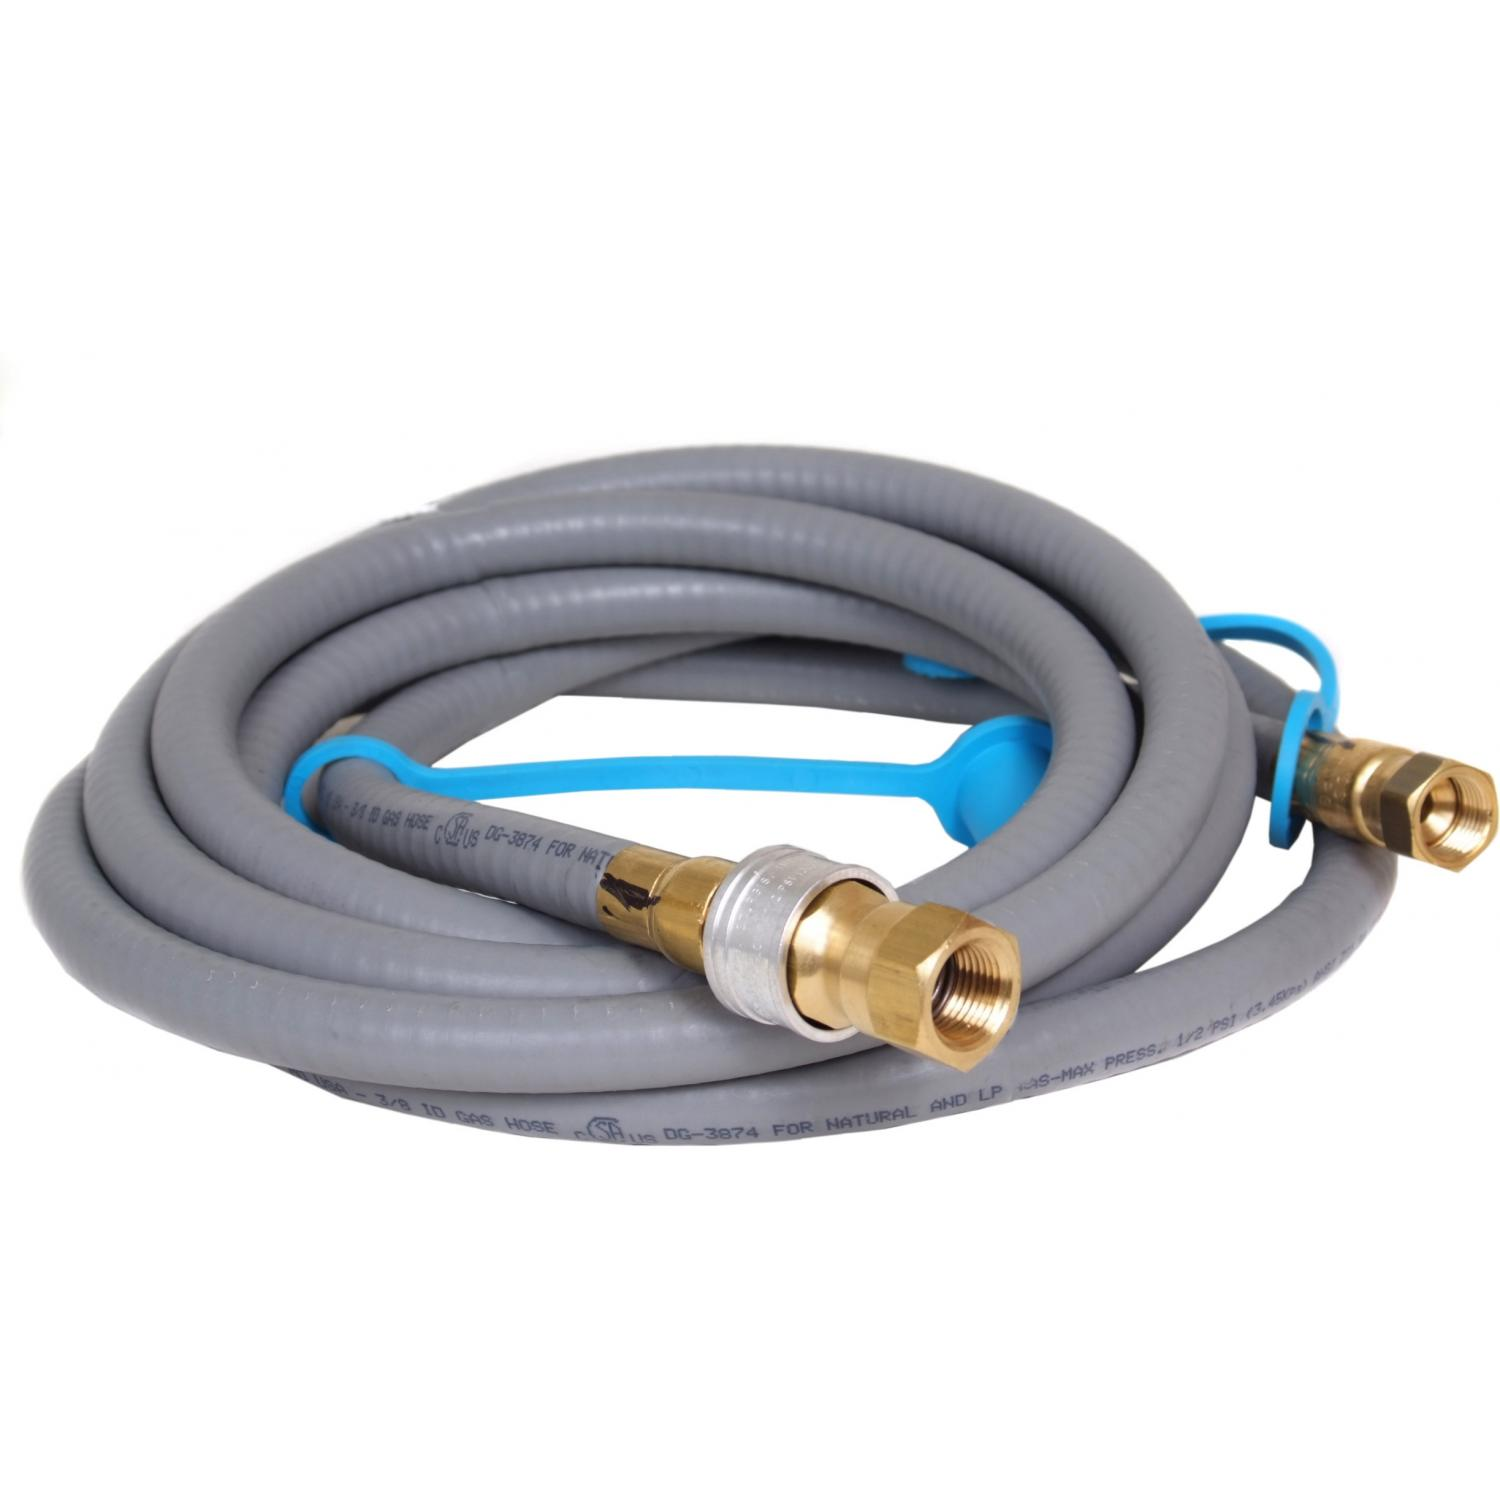 12 Foot Natural Gas Gas W/ Quick Disconnect 80144